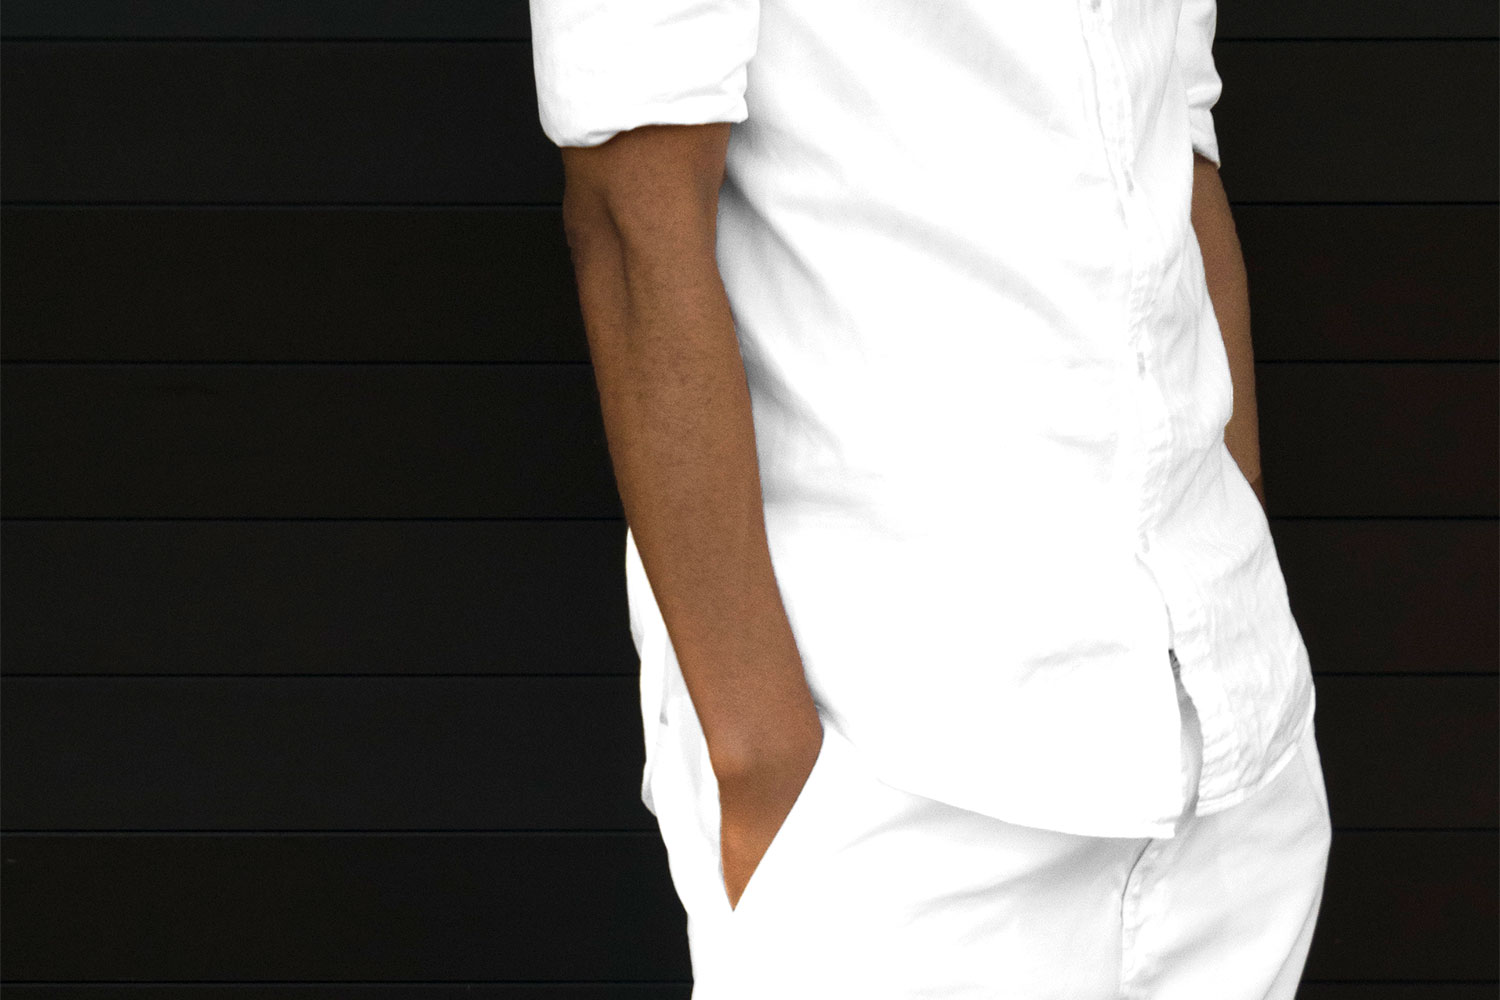 KG wears casually styled classic whites in front of a black door